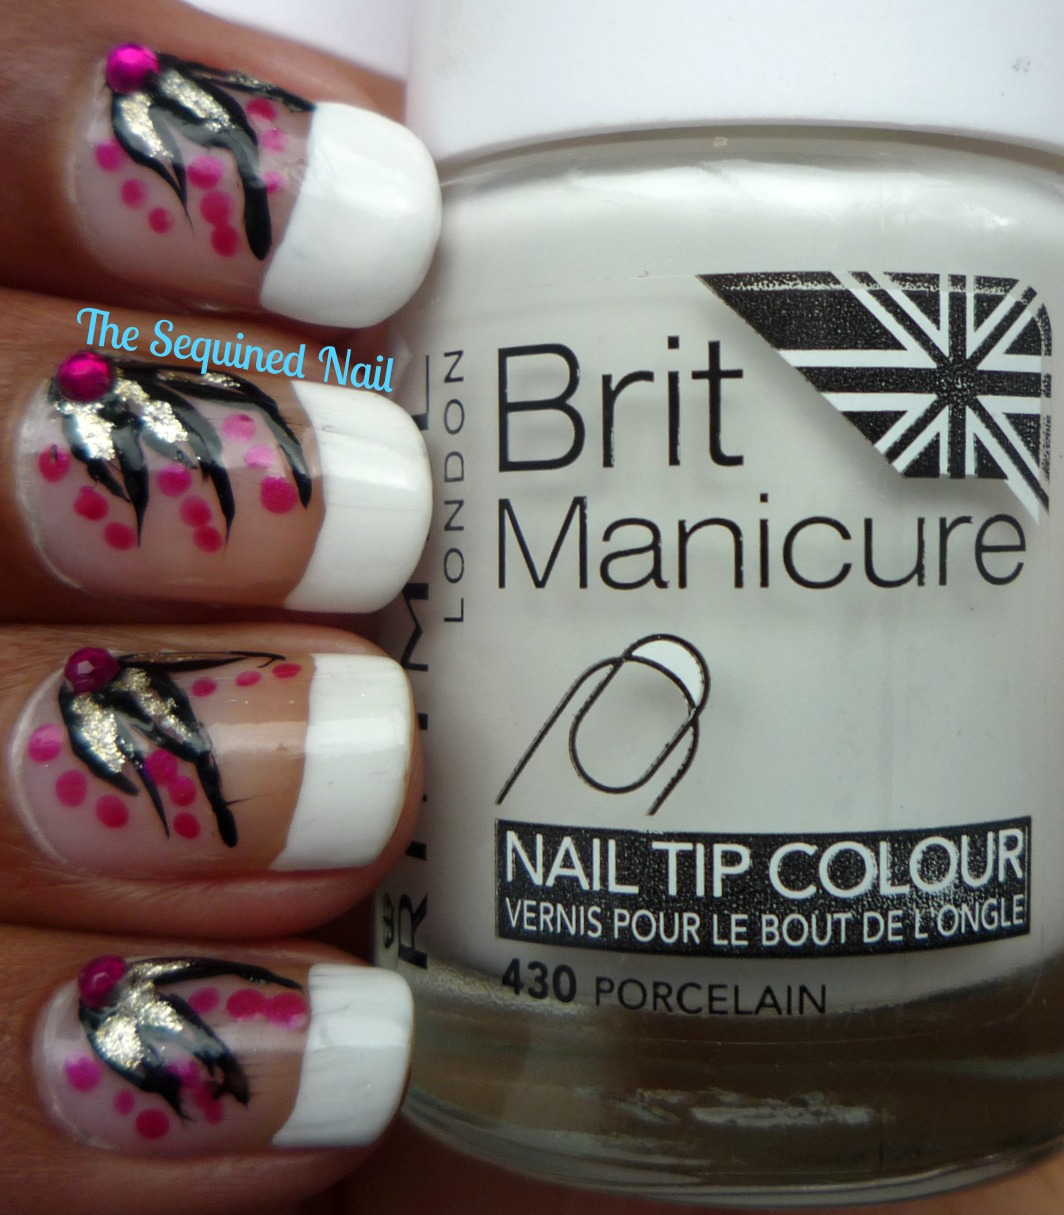 The Sequined Nail: French Manicure with Flowers